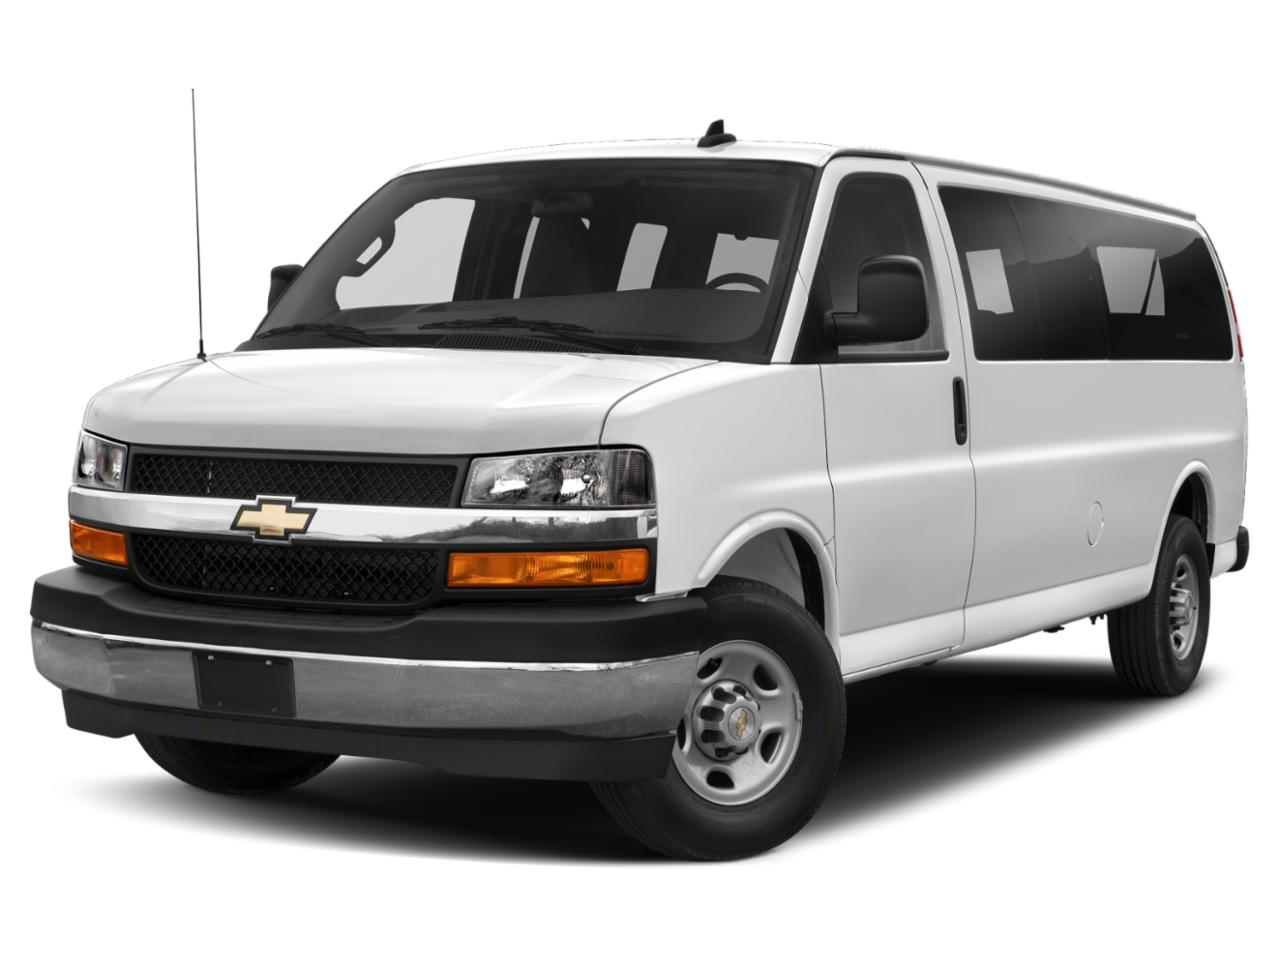 2020 Chevrolet Express Cargo Van Vehicle Photo in Wakefield, MA 01880